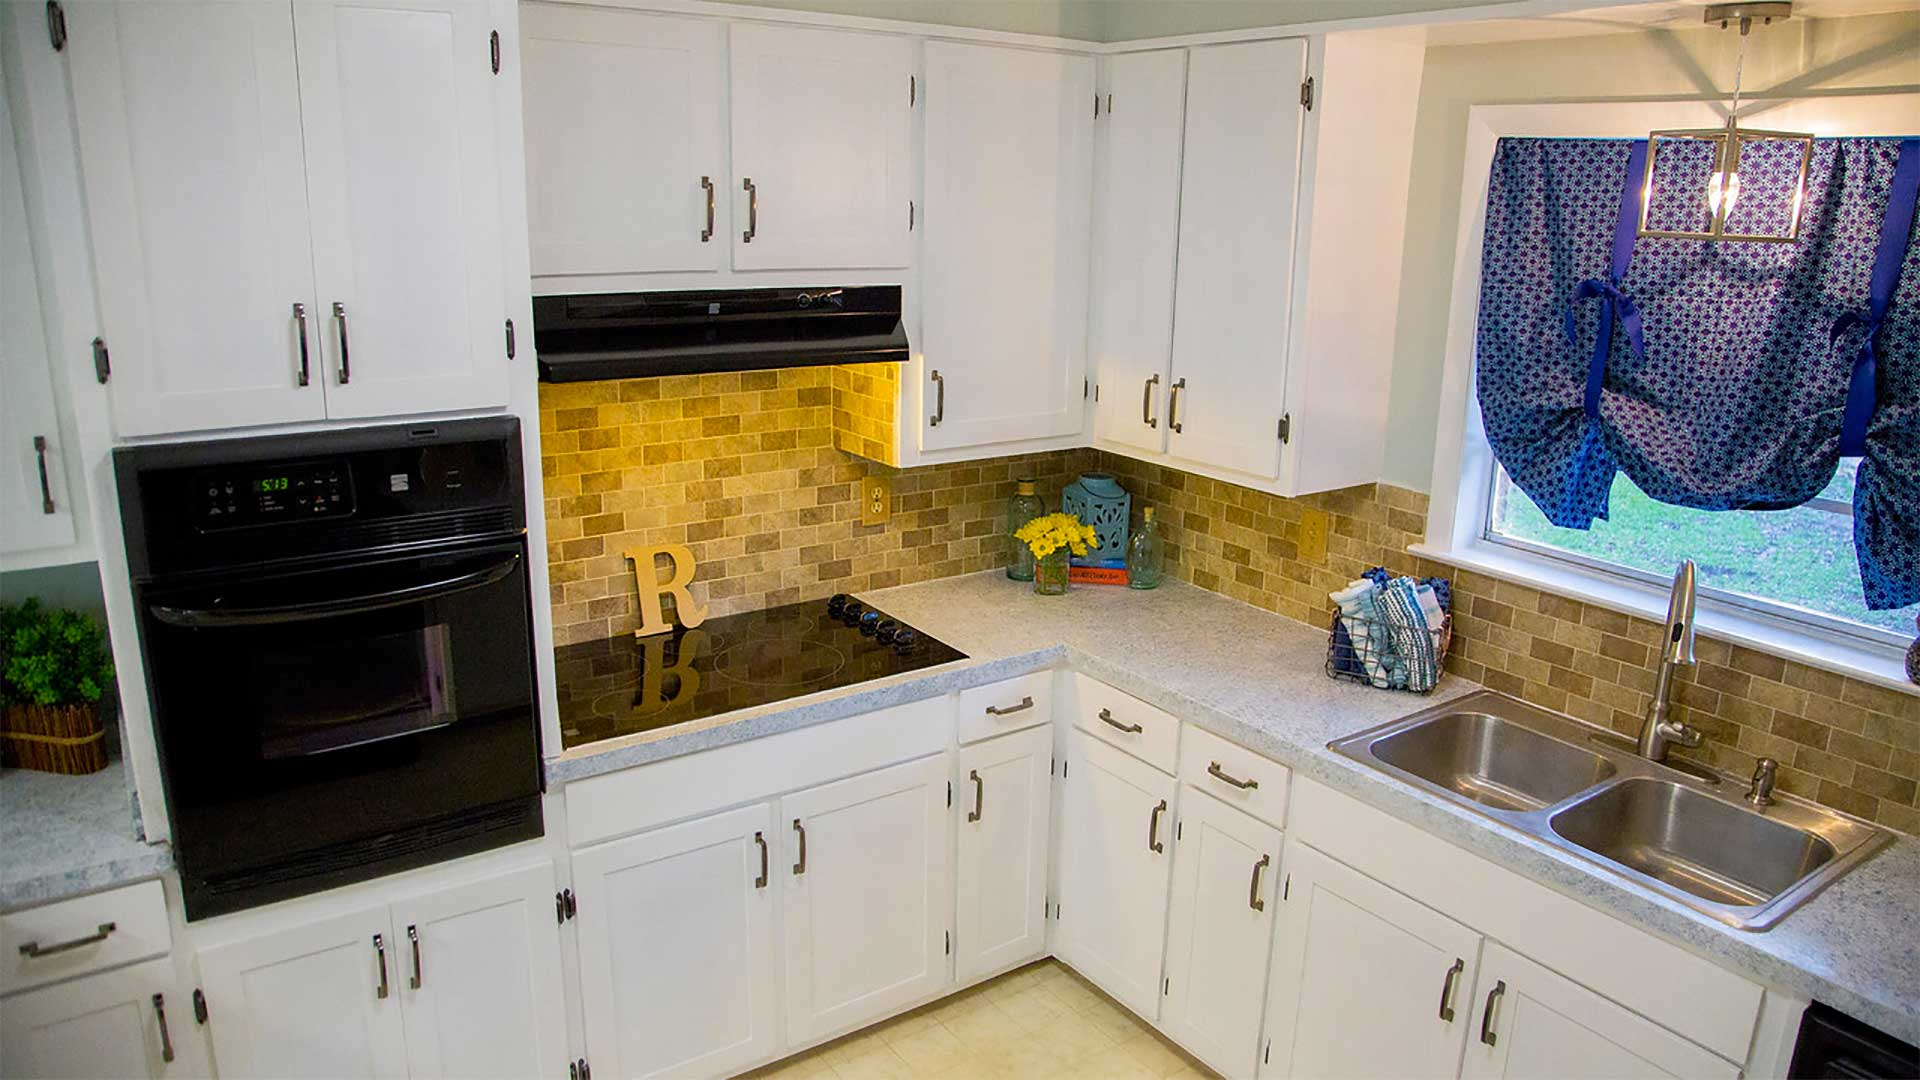 Kitchen with backsplash, white cabinets and freshly painted walls